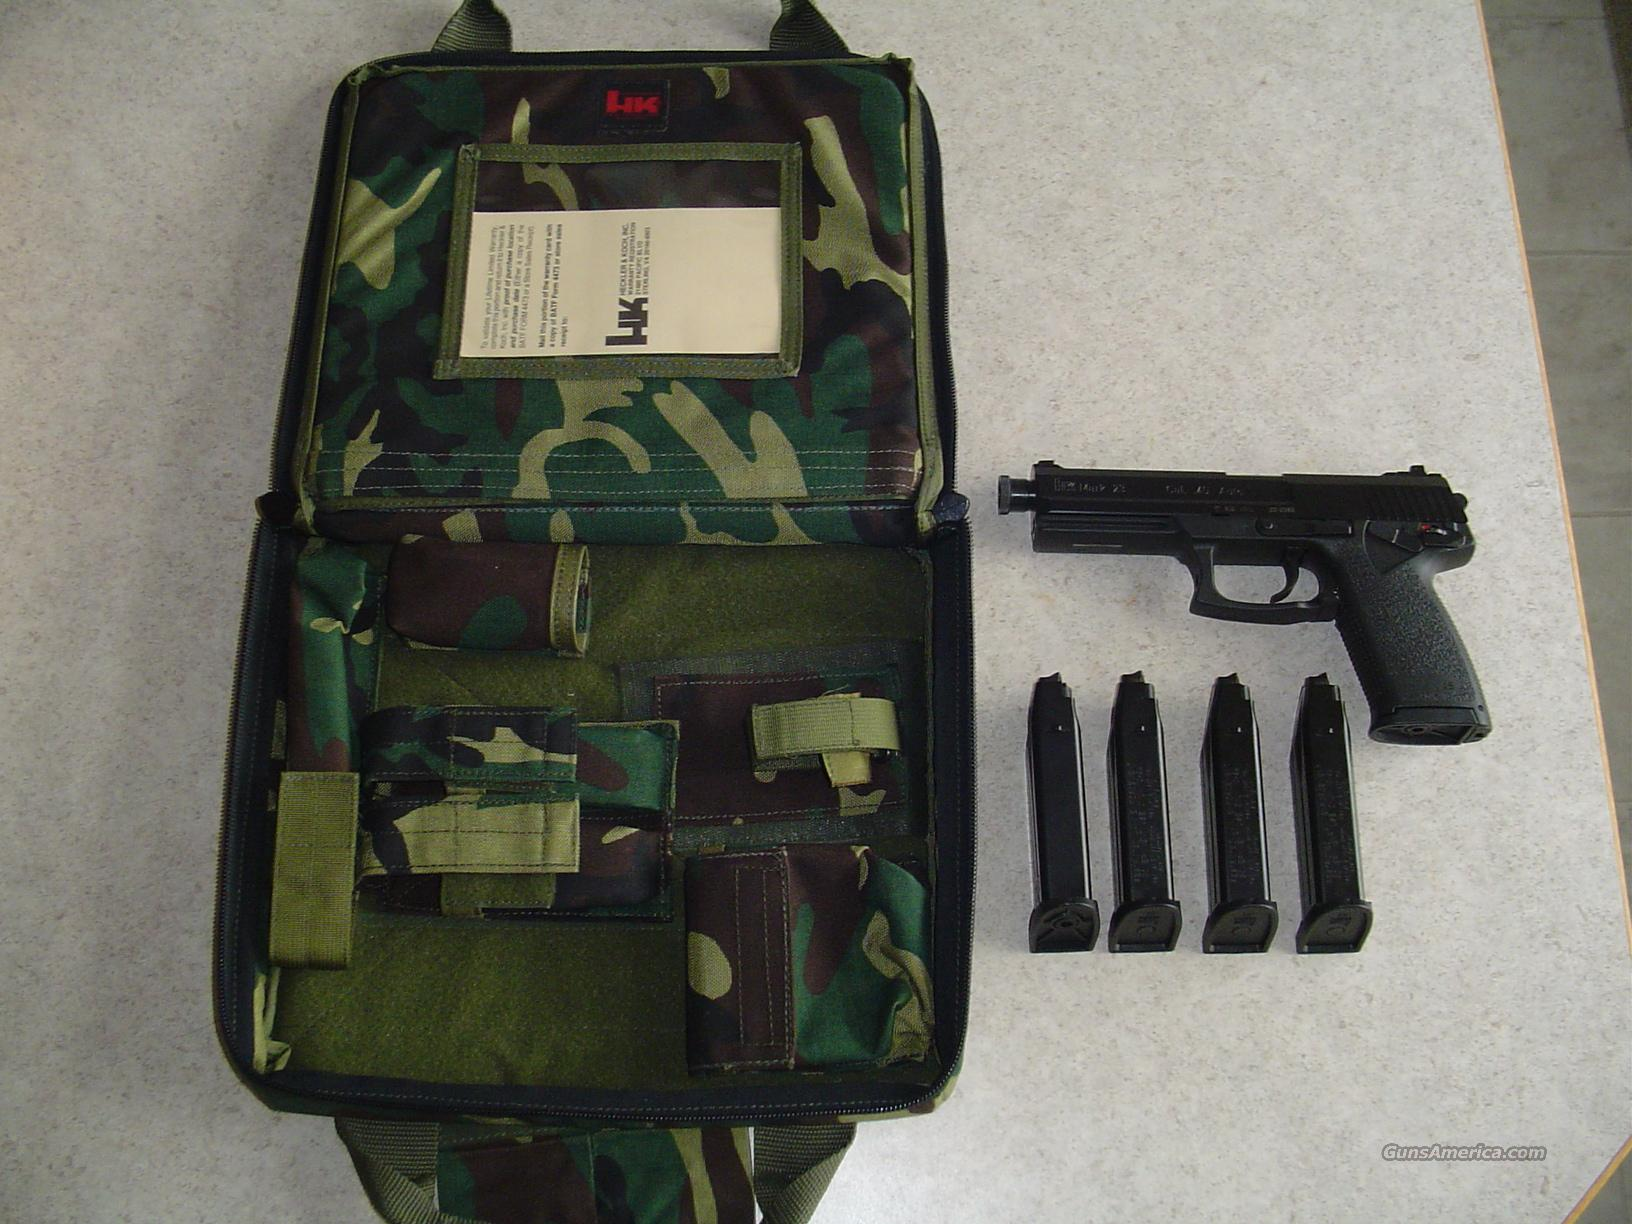 Hk mark socom new in camo bag with mags nite